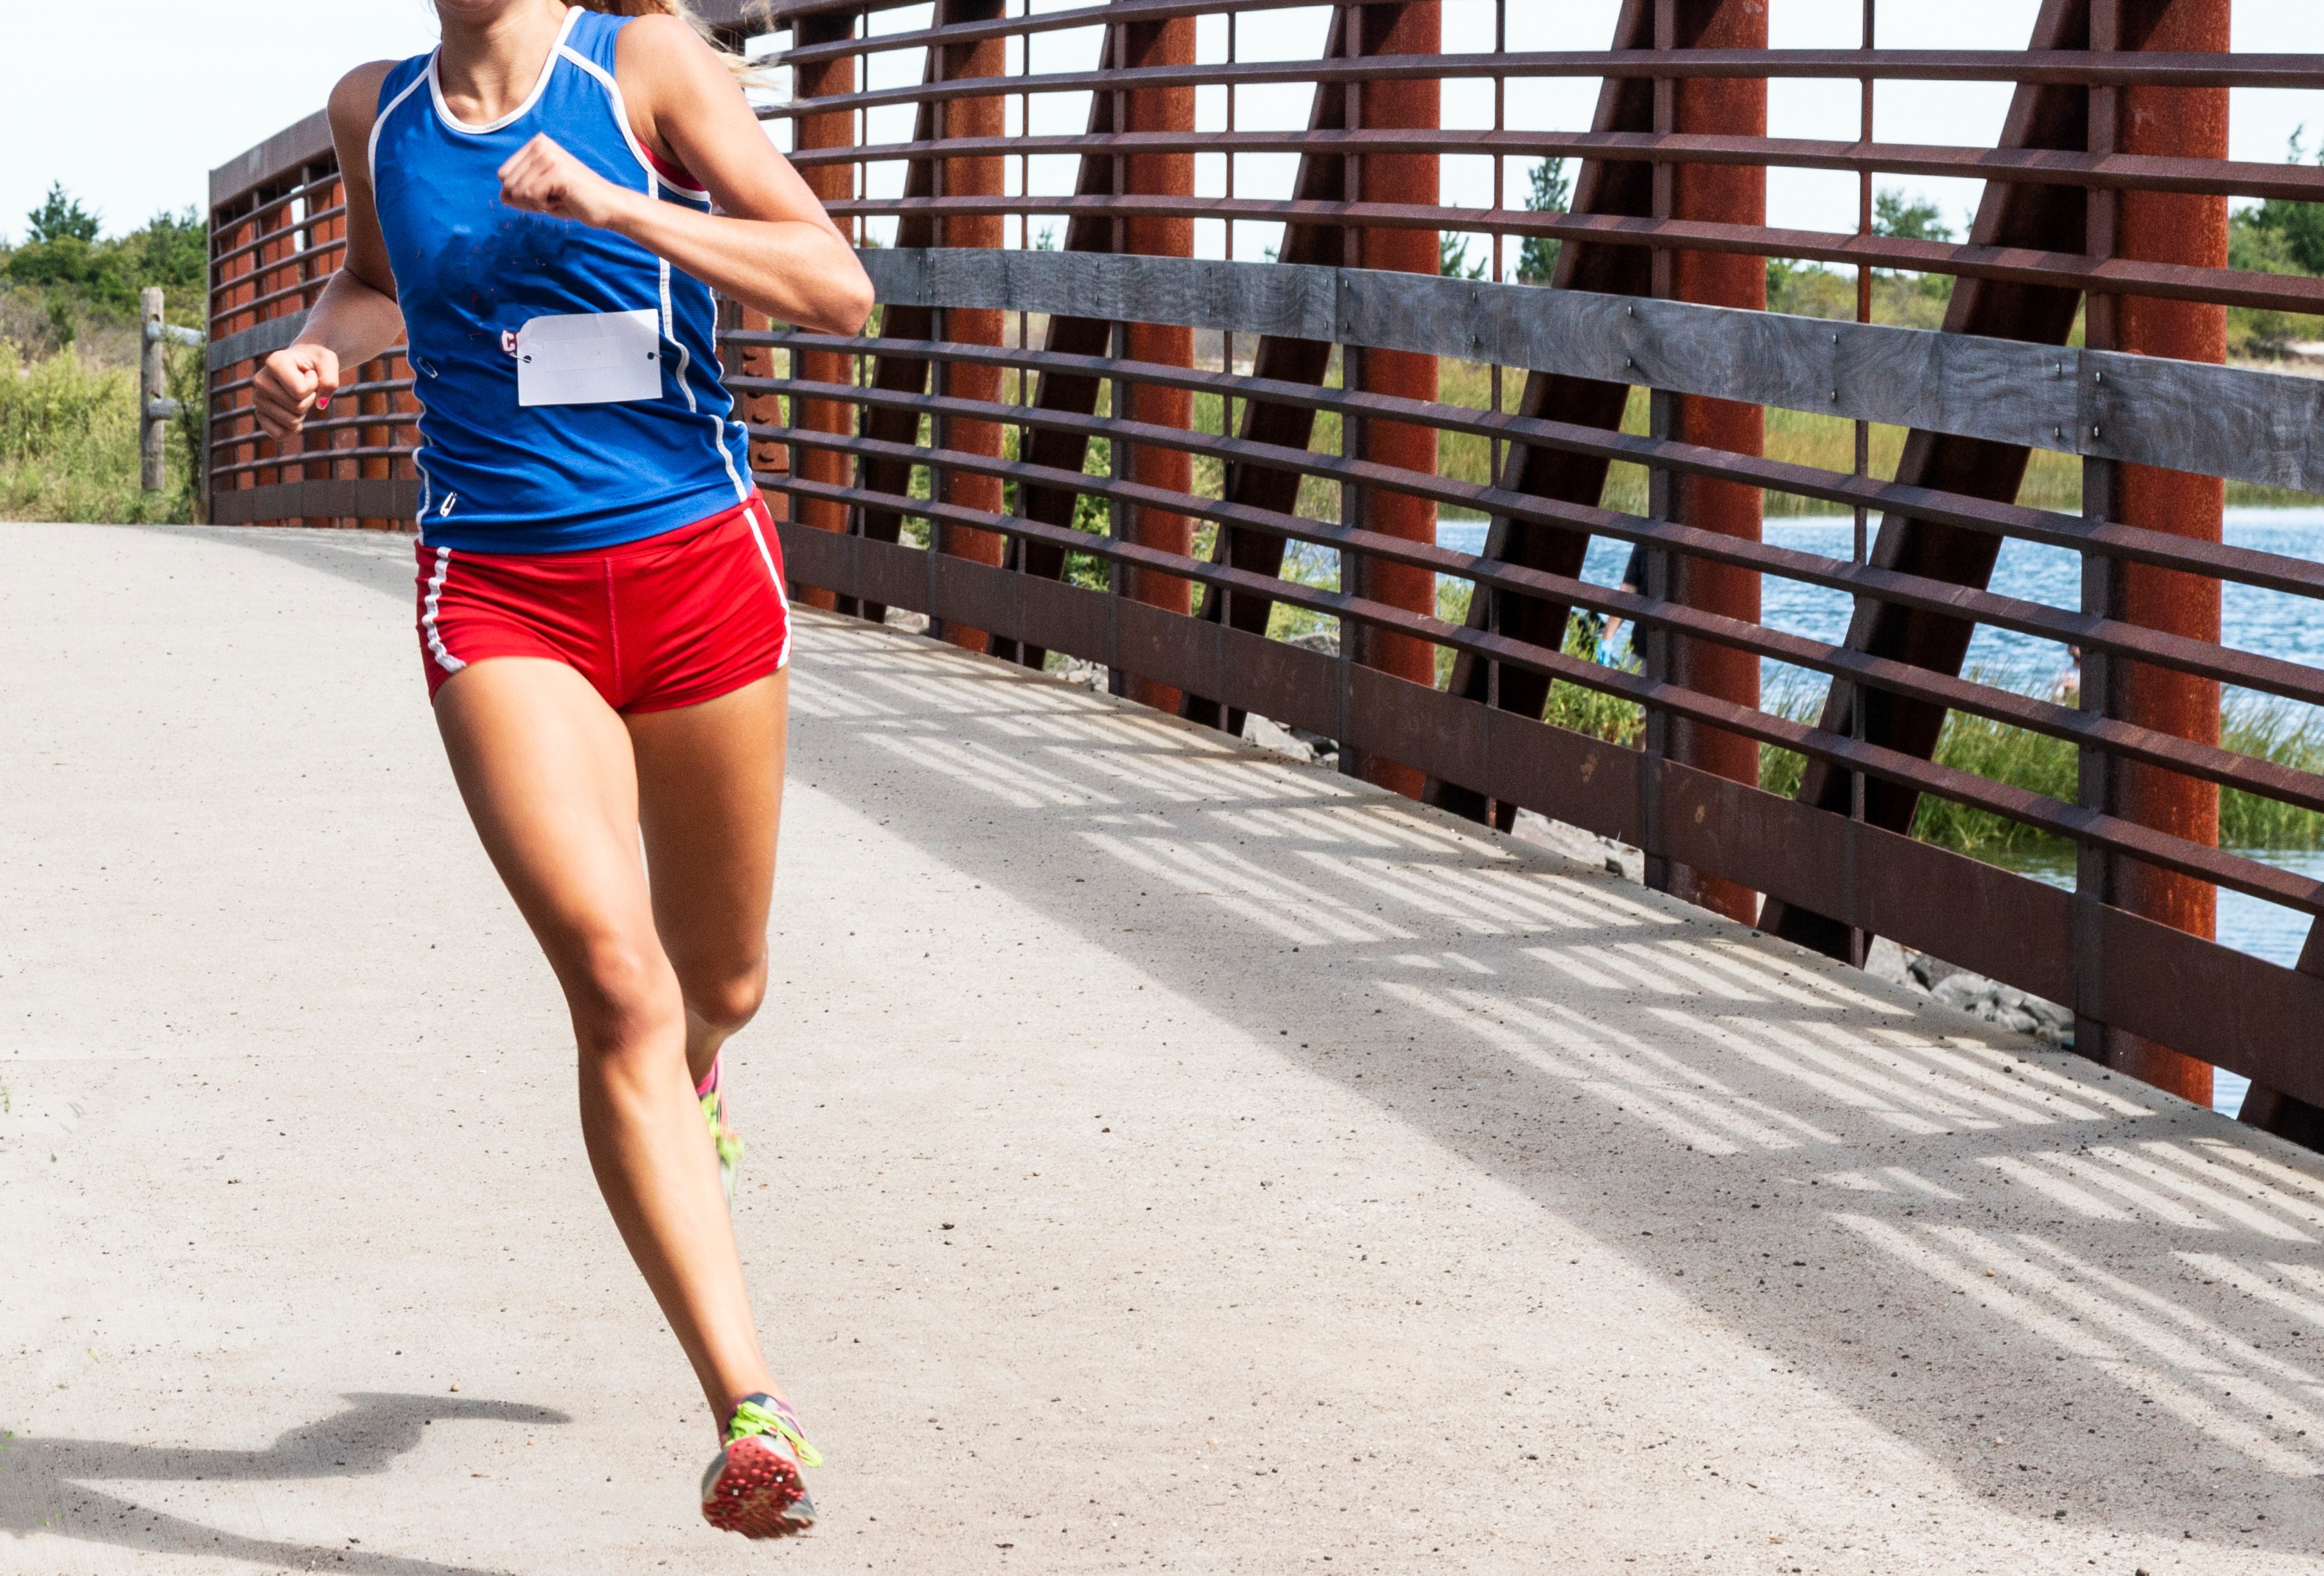 A high school cross country girl is running a race crossing a bridge wearing red shorts and blue racing top | Photo: Shutterstock